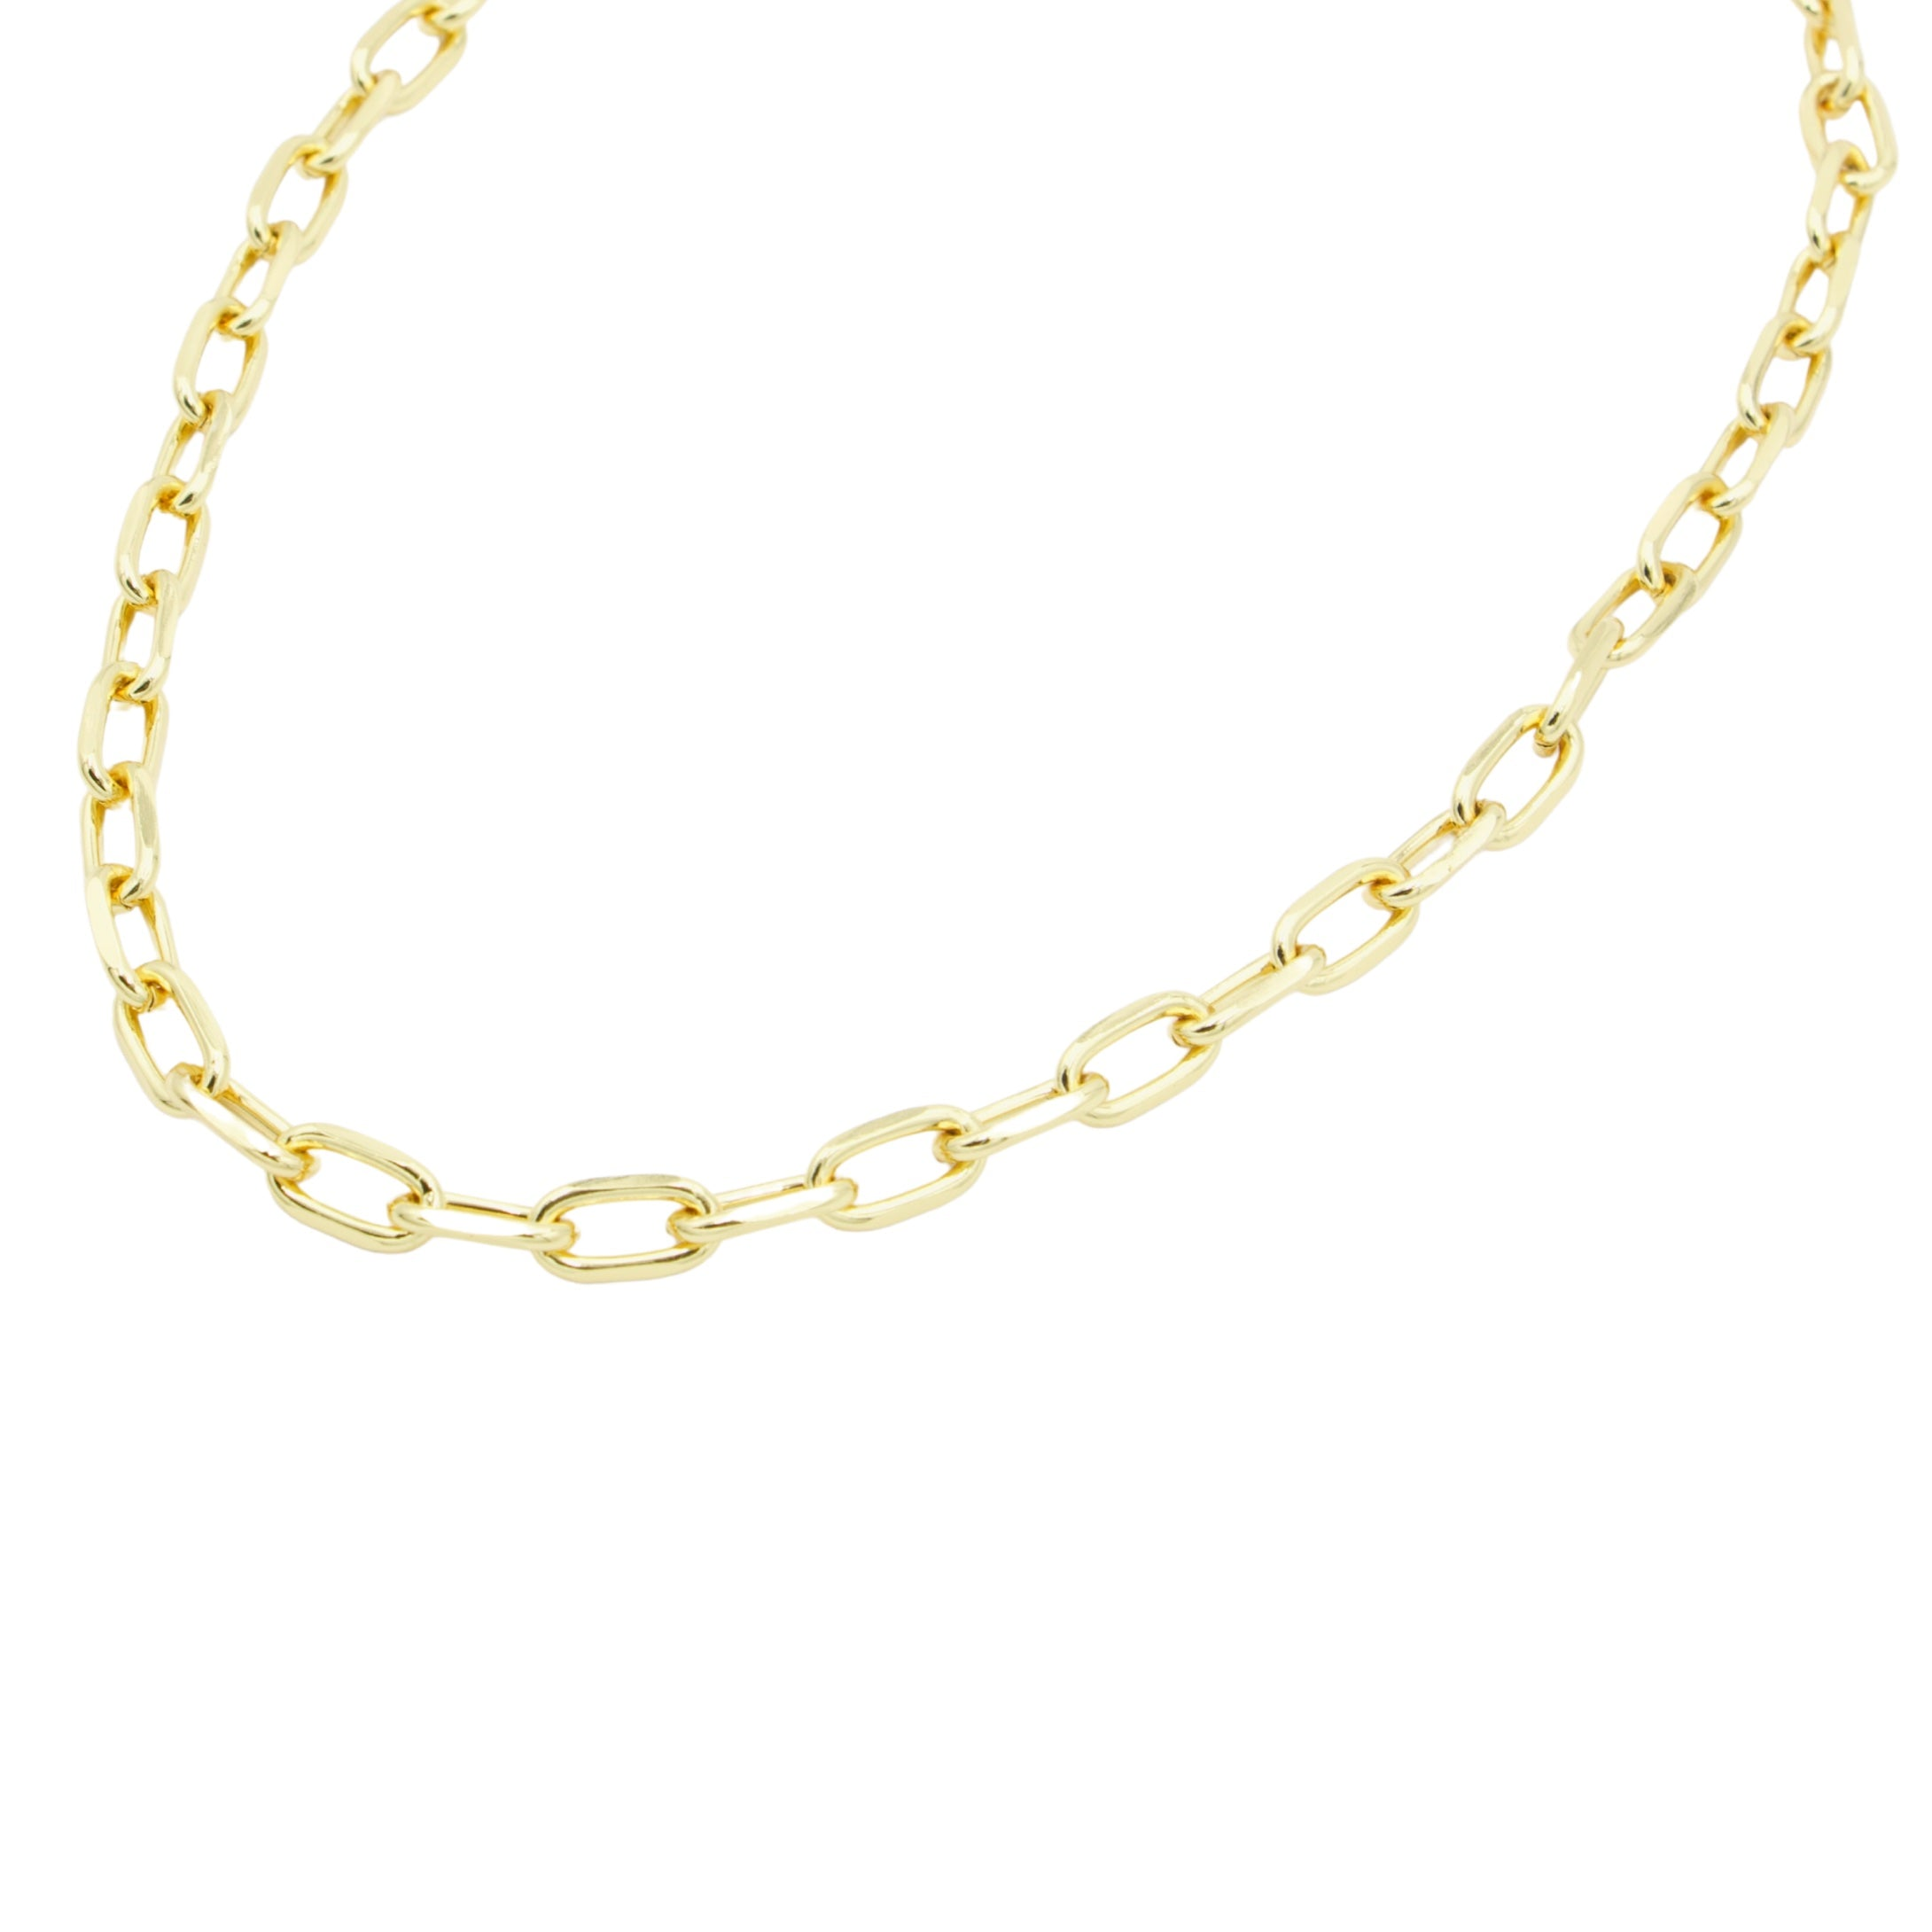 AW Boutique's Thick Cable Link Chain is a striking piece at 19 inches long that you can wear alone or layer with a finer chain to give it an edgier look.  Wear this chain everyday to dress up your look with no effort at all.  This treasure will quickly become a go-to staple in your jewellery wardrobe.